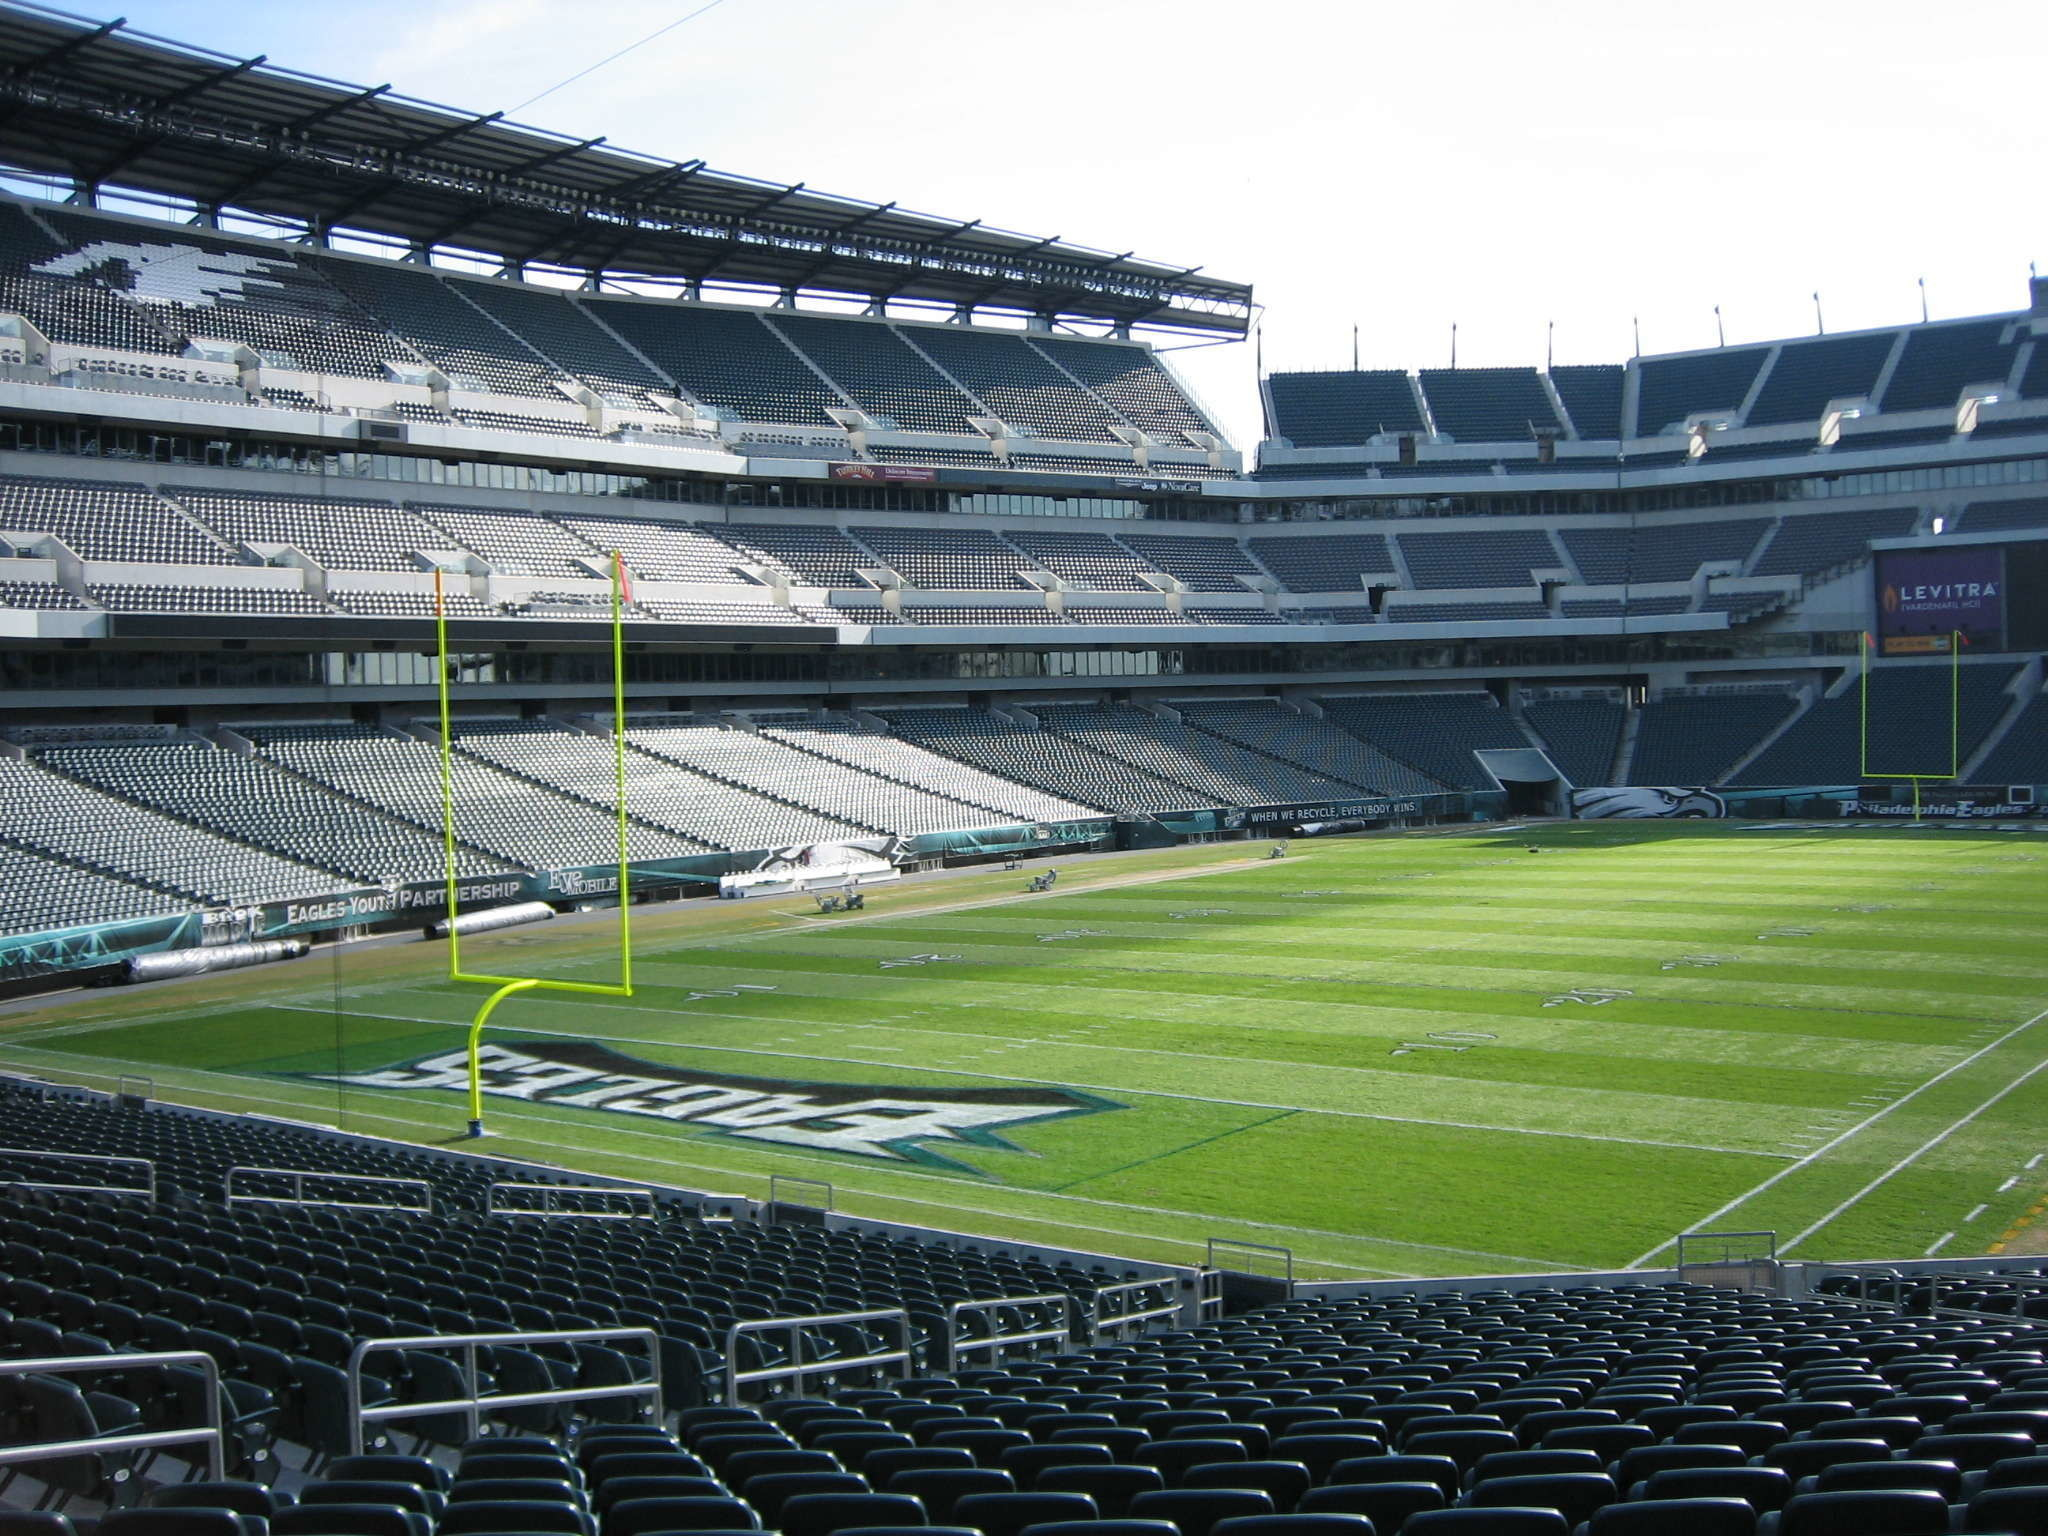 2016 Philadelphia Eagles Draft Preview and Schedule